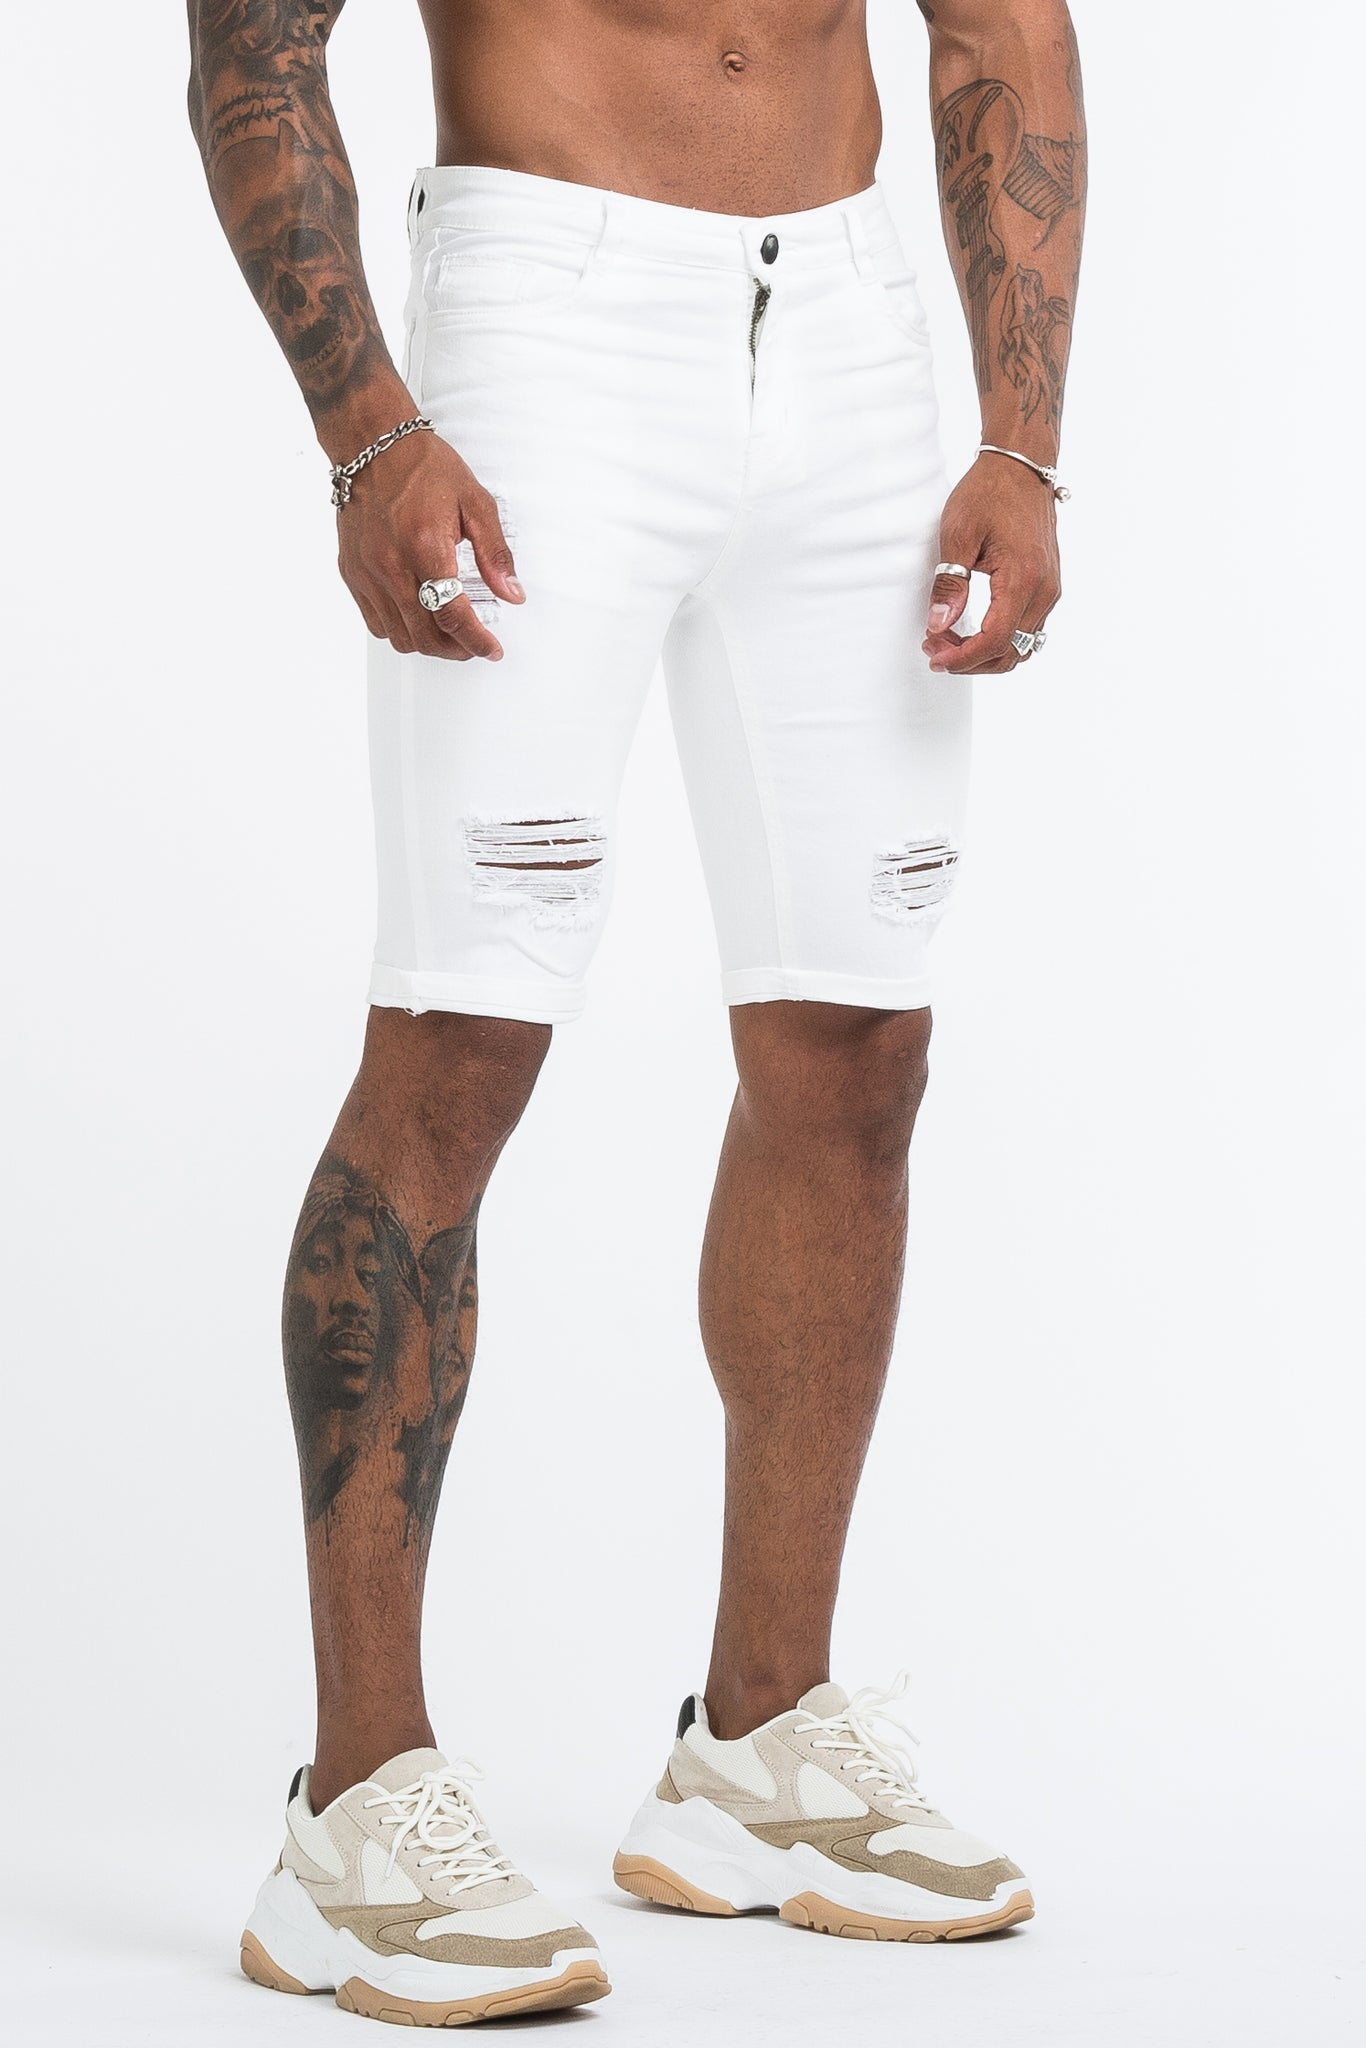 THE SAINT 2.0 SHORTS - WHITE